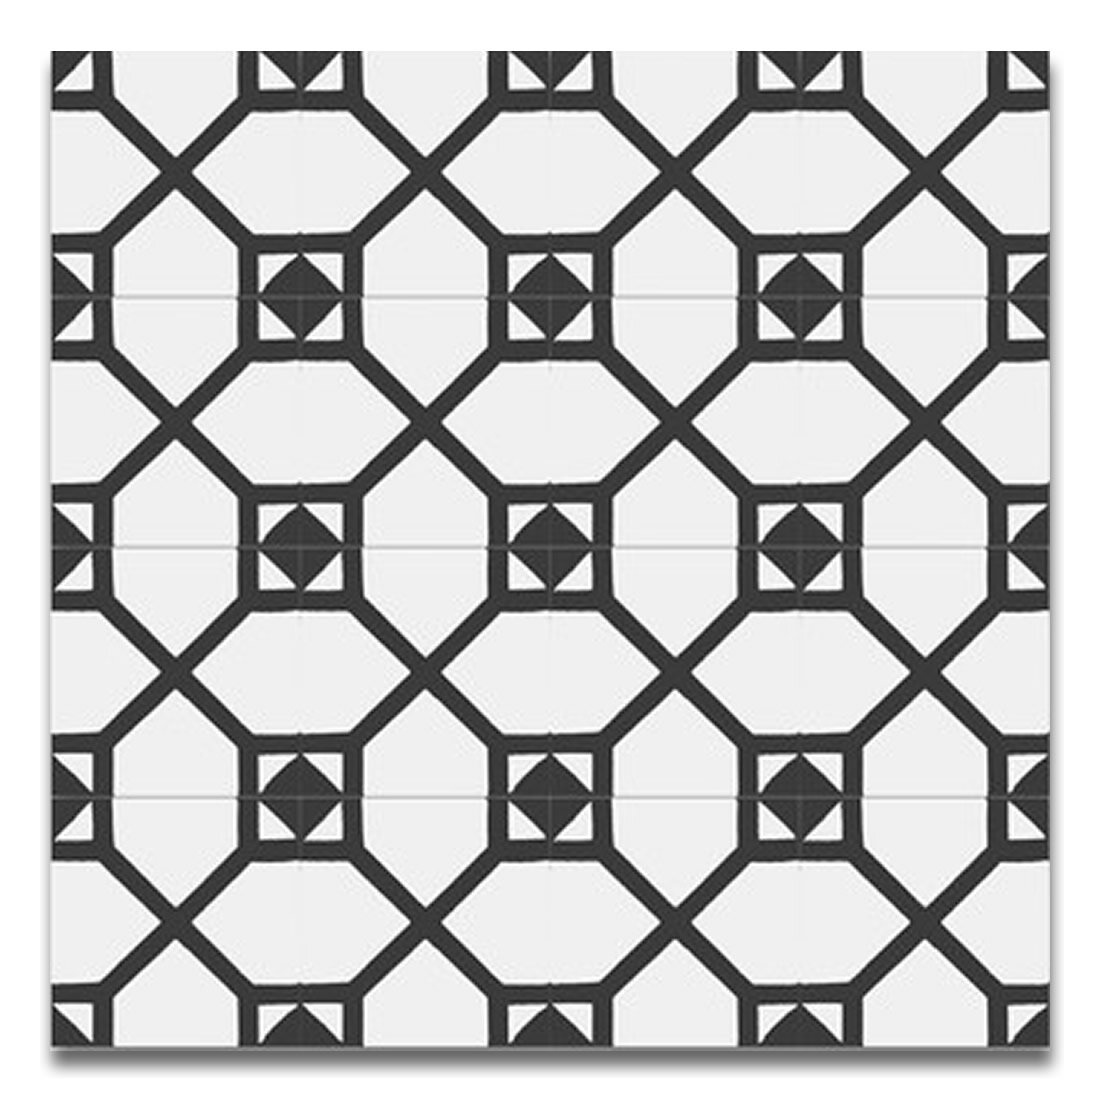 Amoud 8 X 8 Handmade Cement Tile In Black And White